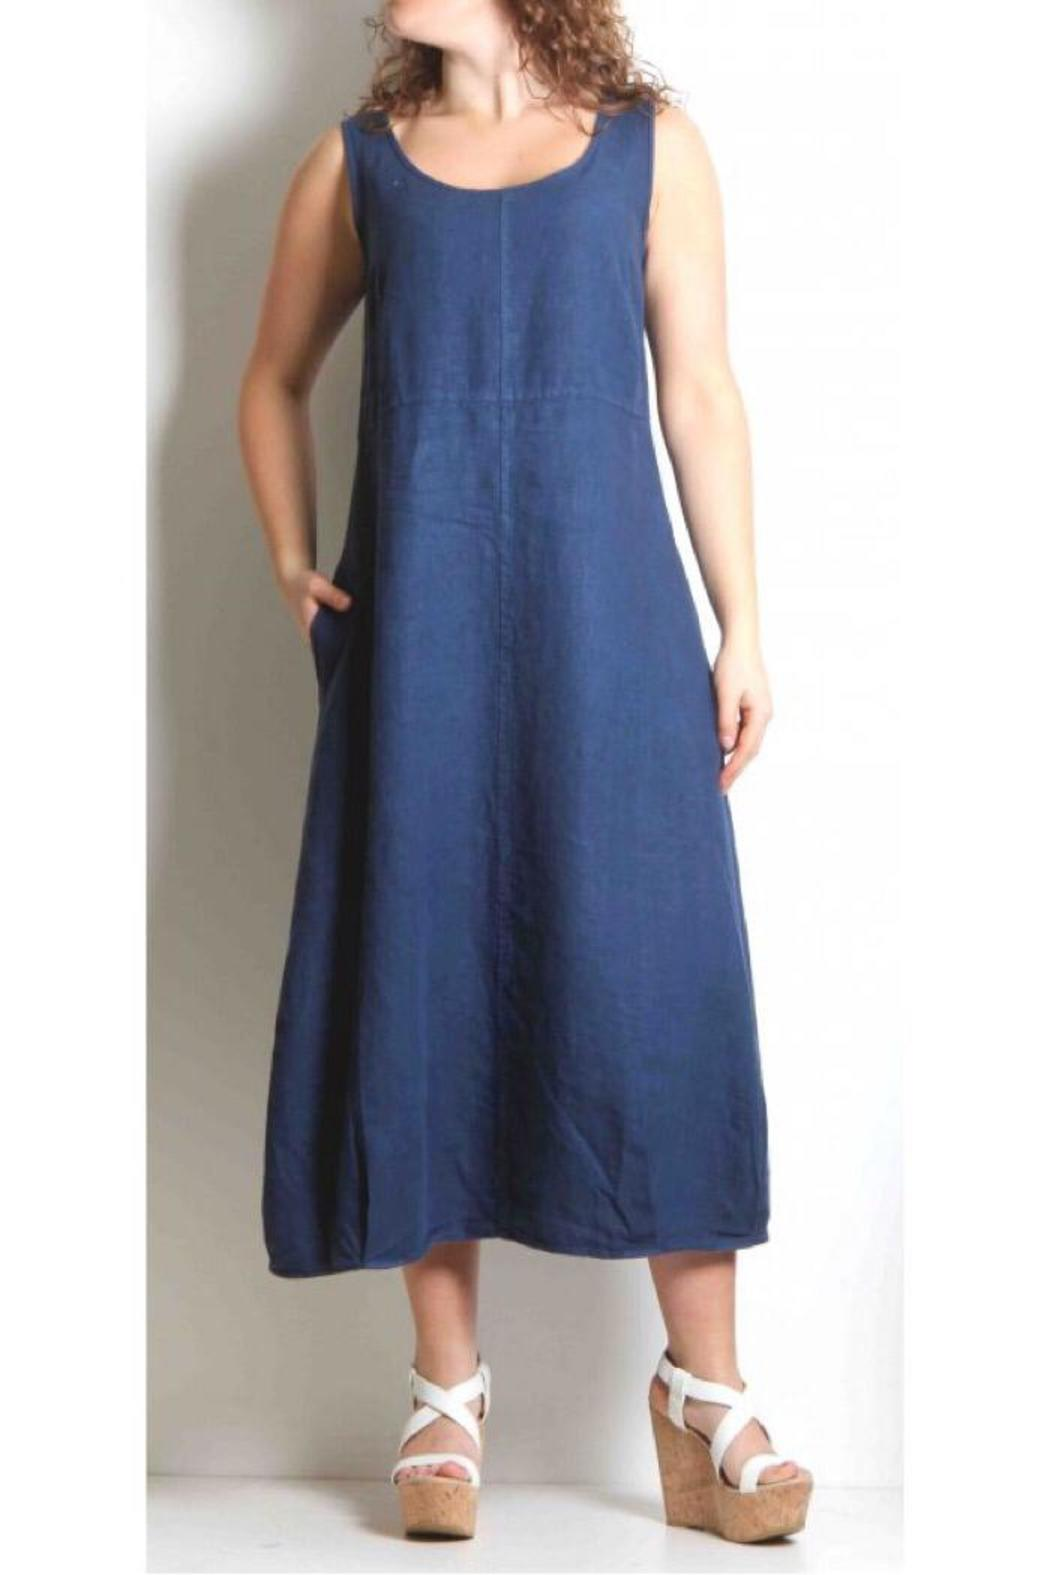 Cut Loose Tuck Linen Dress From Canada By Gaia Boutique Shoptiques